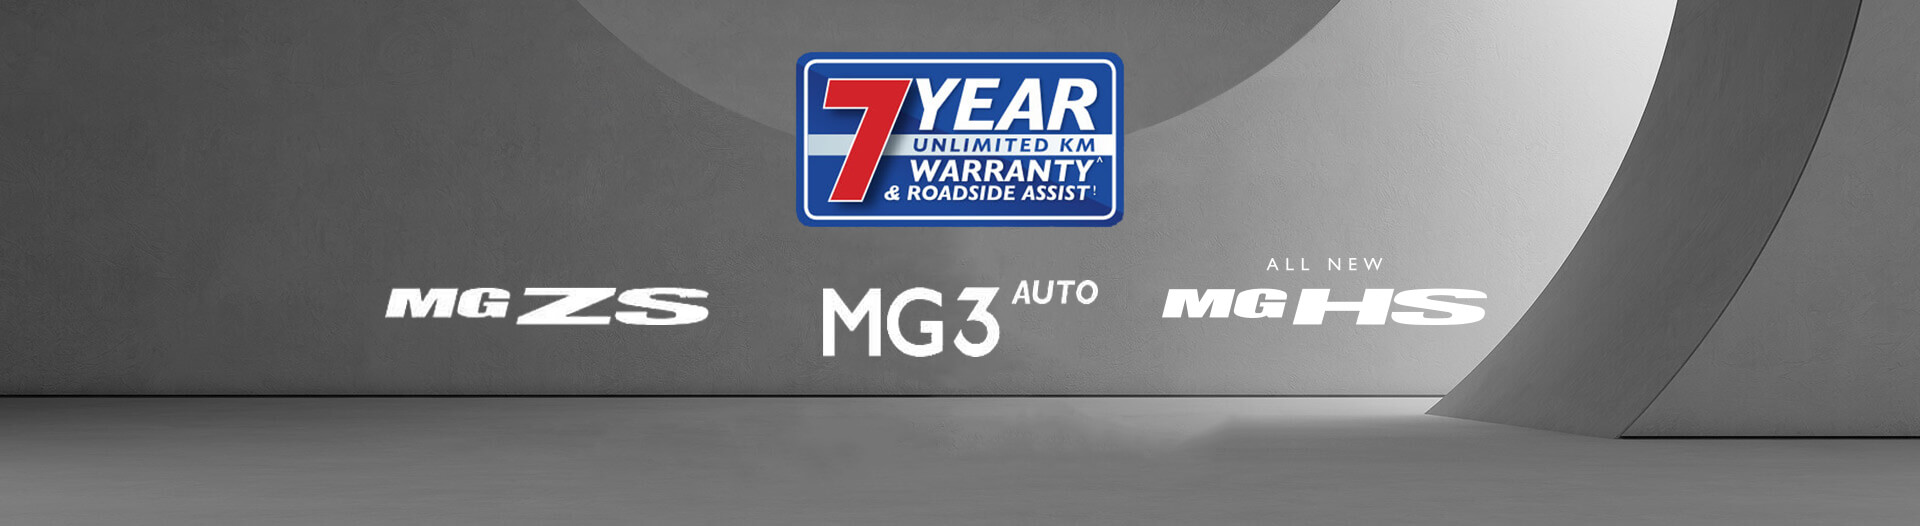 MG - Warranty Information